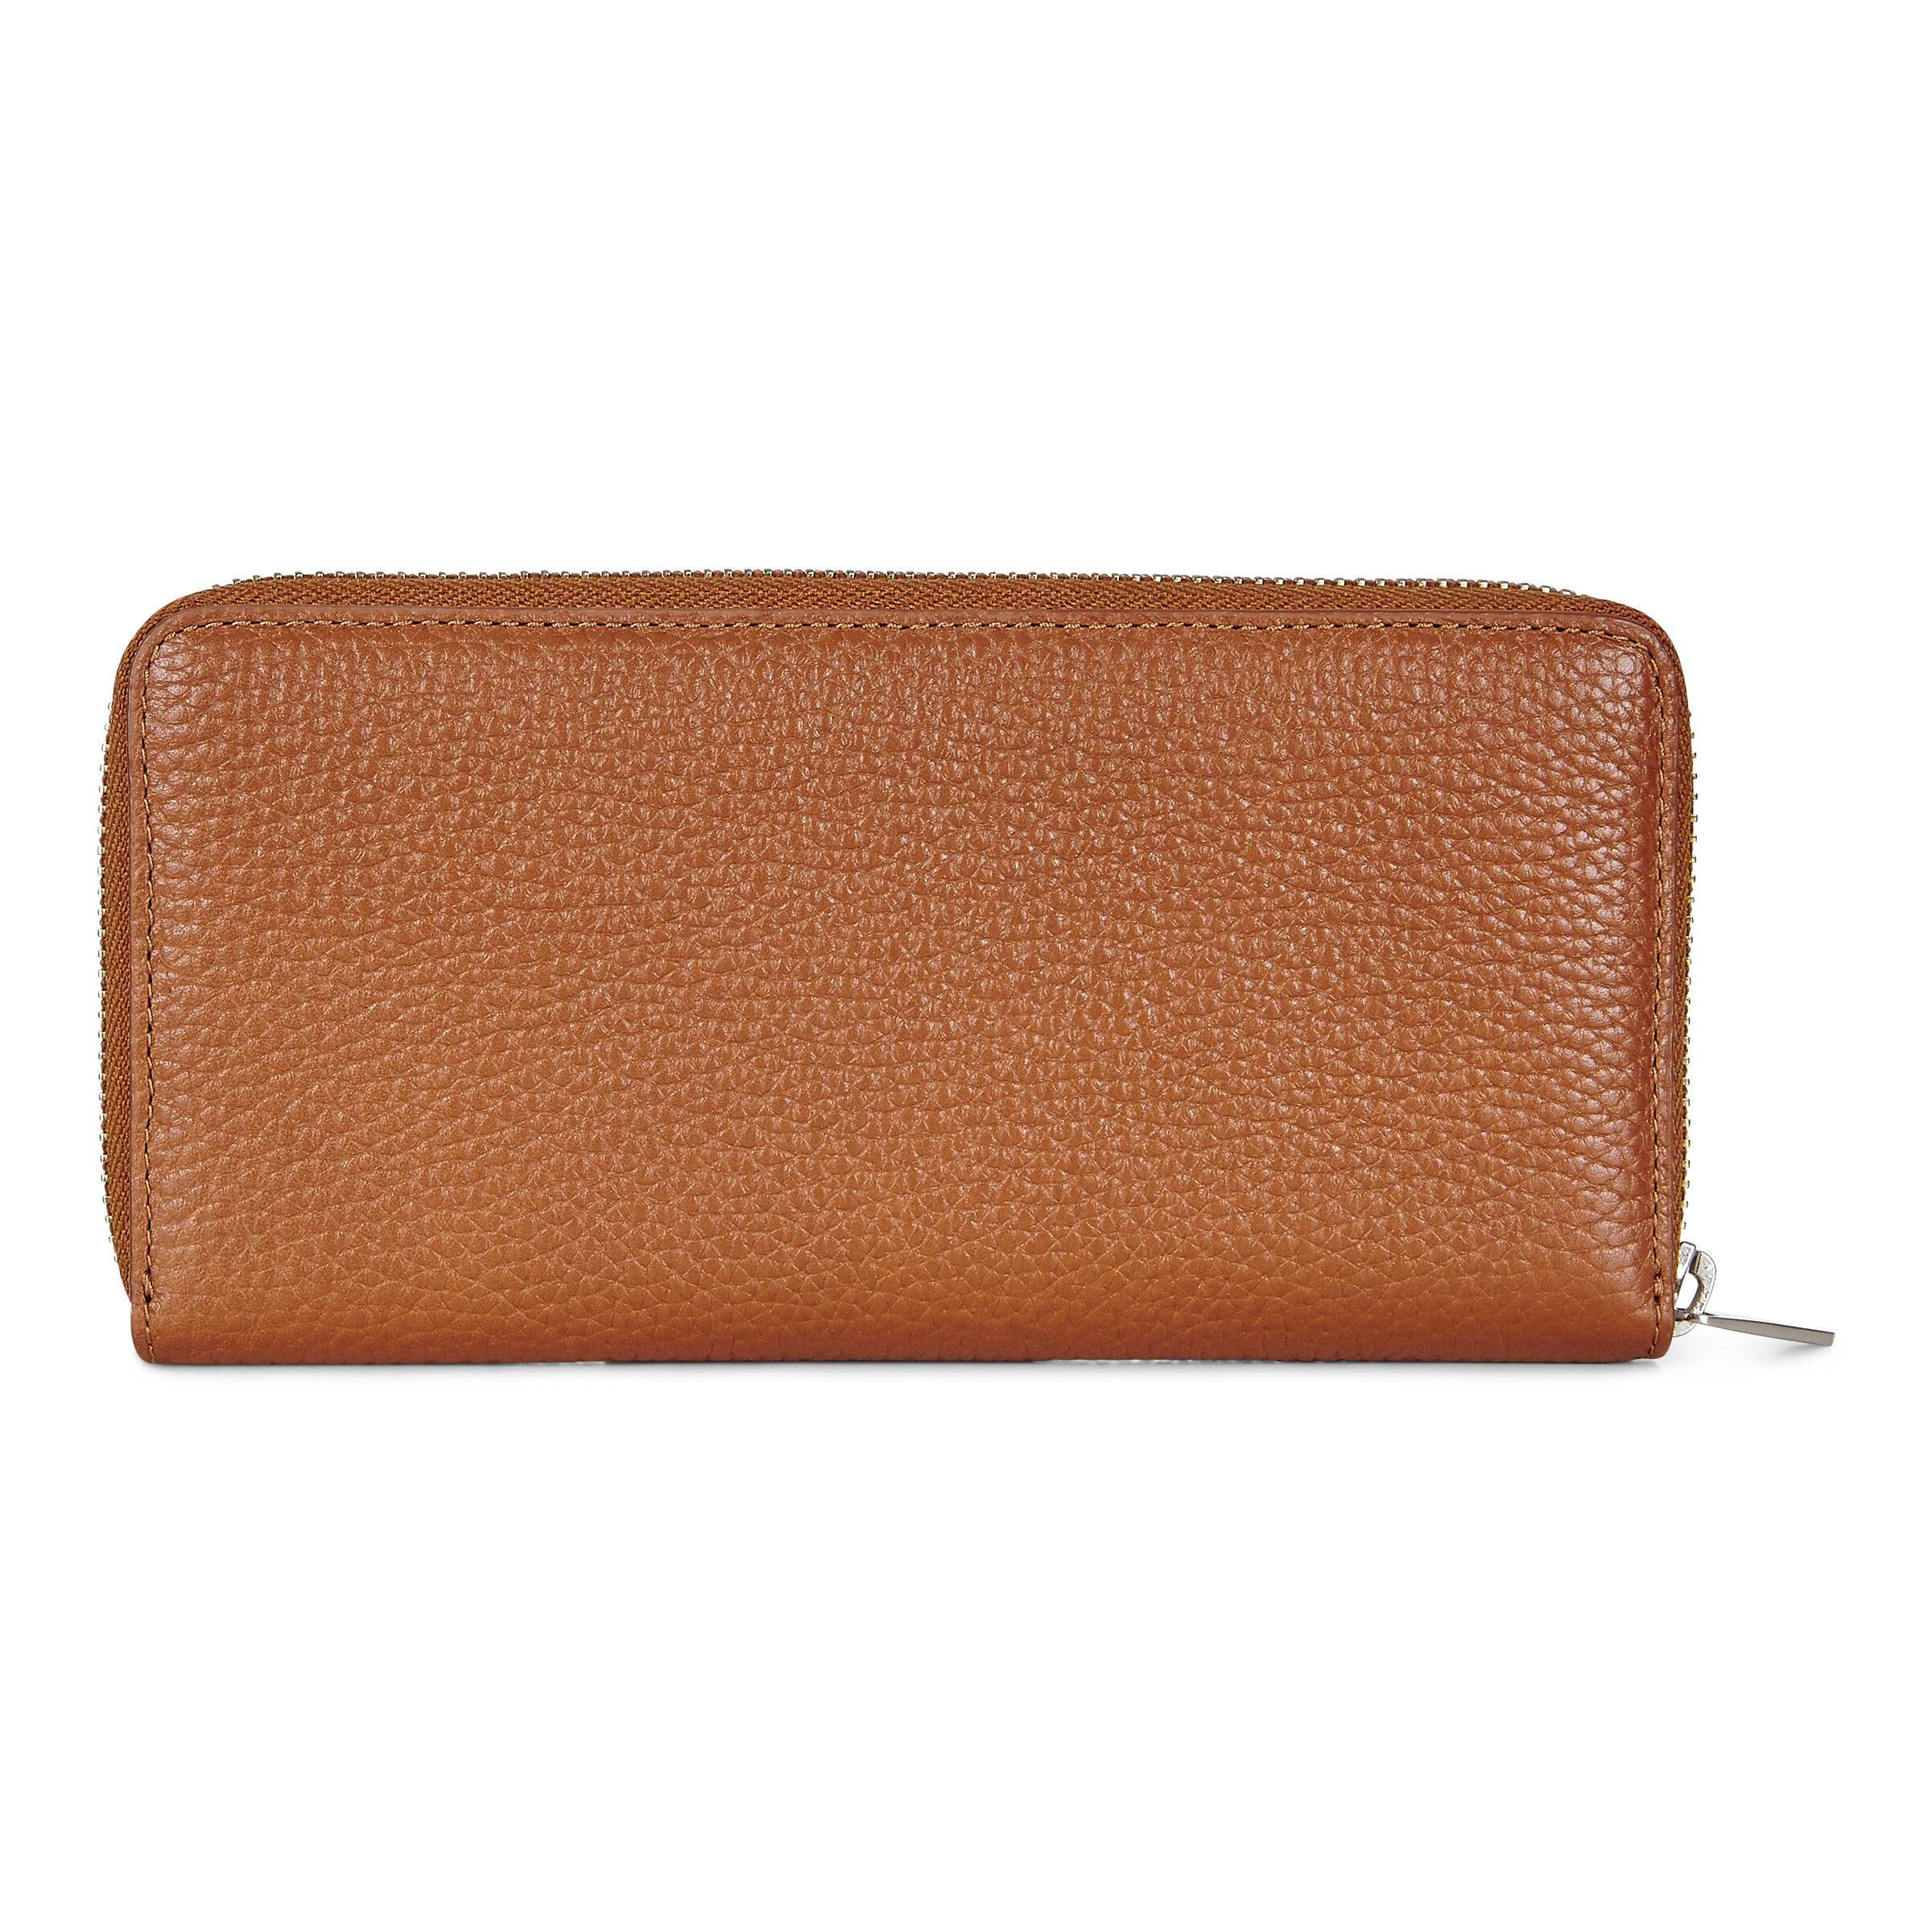 ECCO Isan 2 Large Zip Wallet: One Size - Caramel